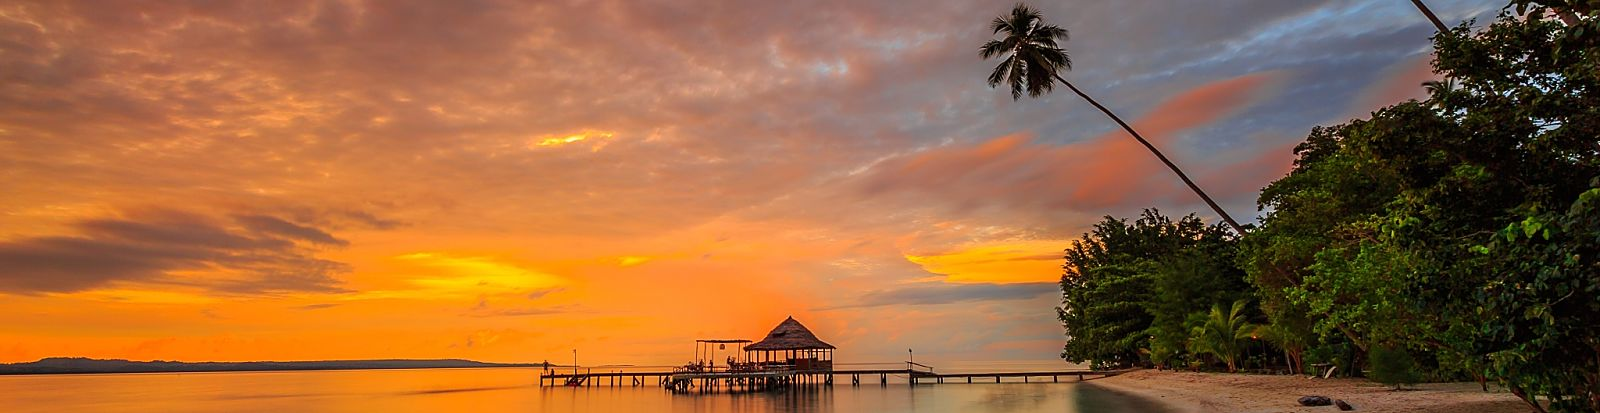 x beach sunset pier palms shutterstock 566535271 opt